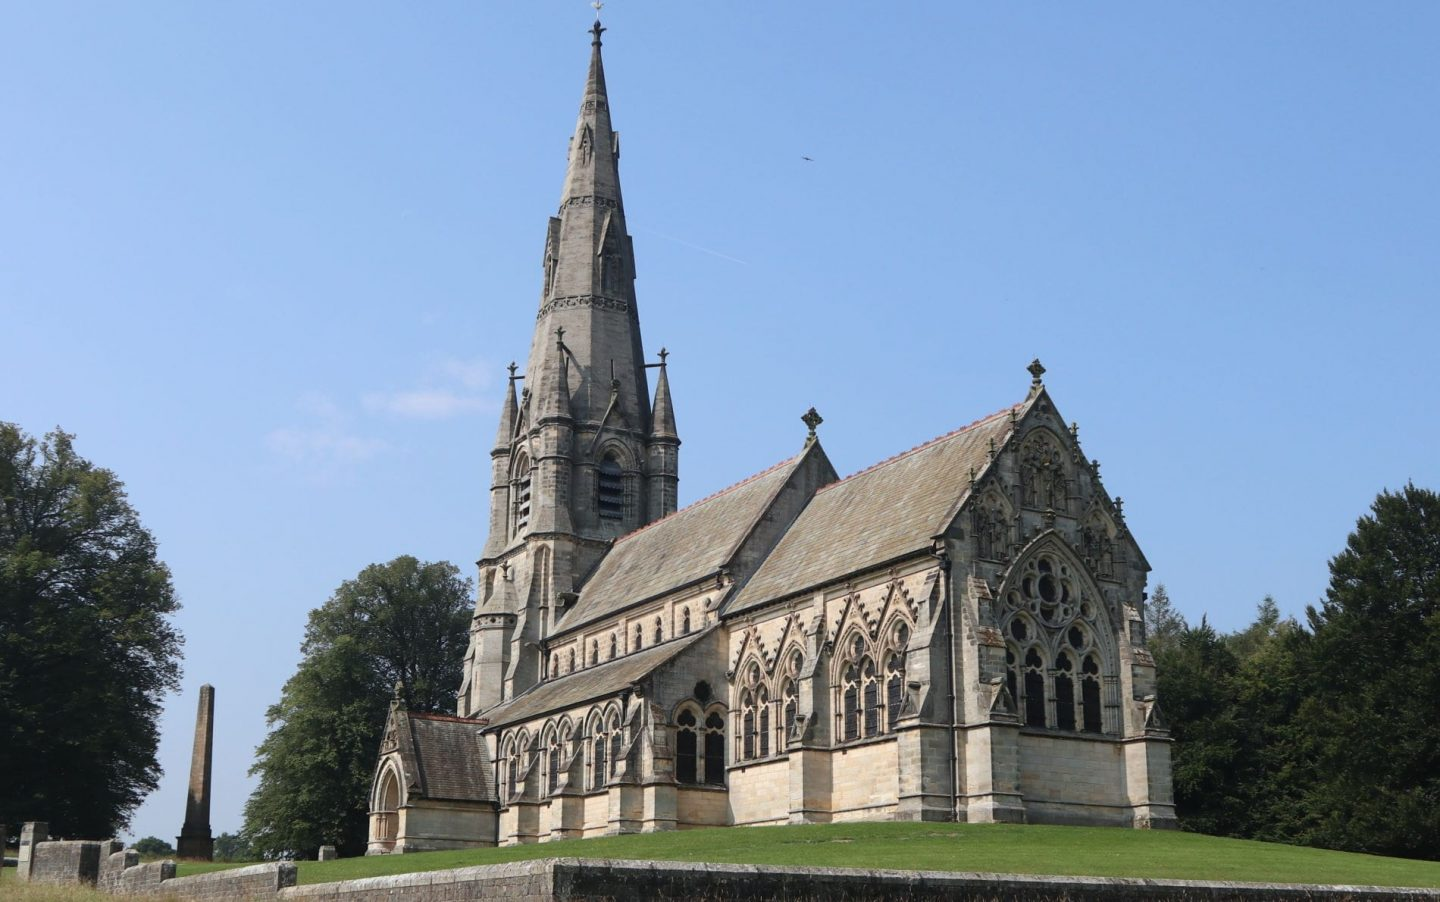 St Mary's church, Studley Royal, Yorkshire